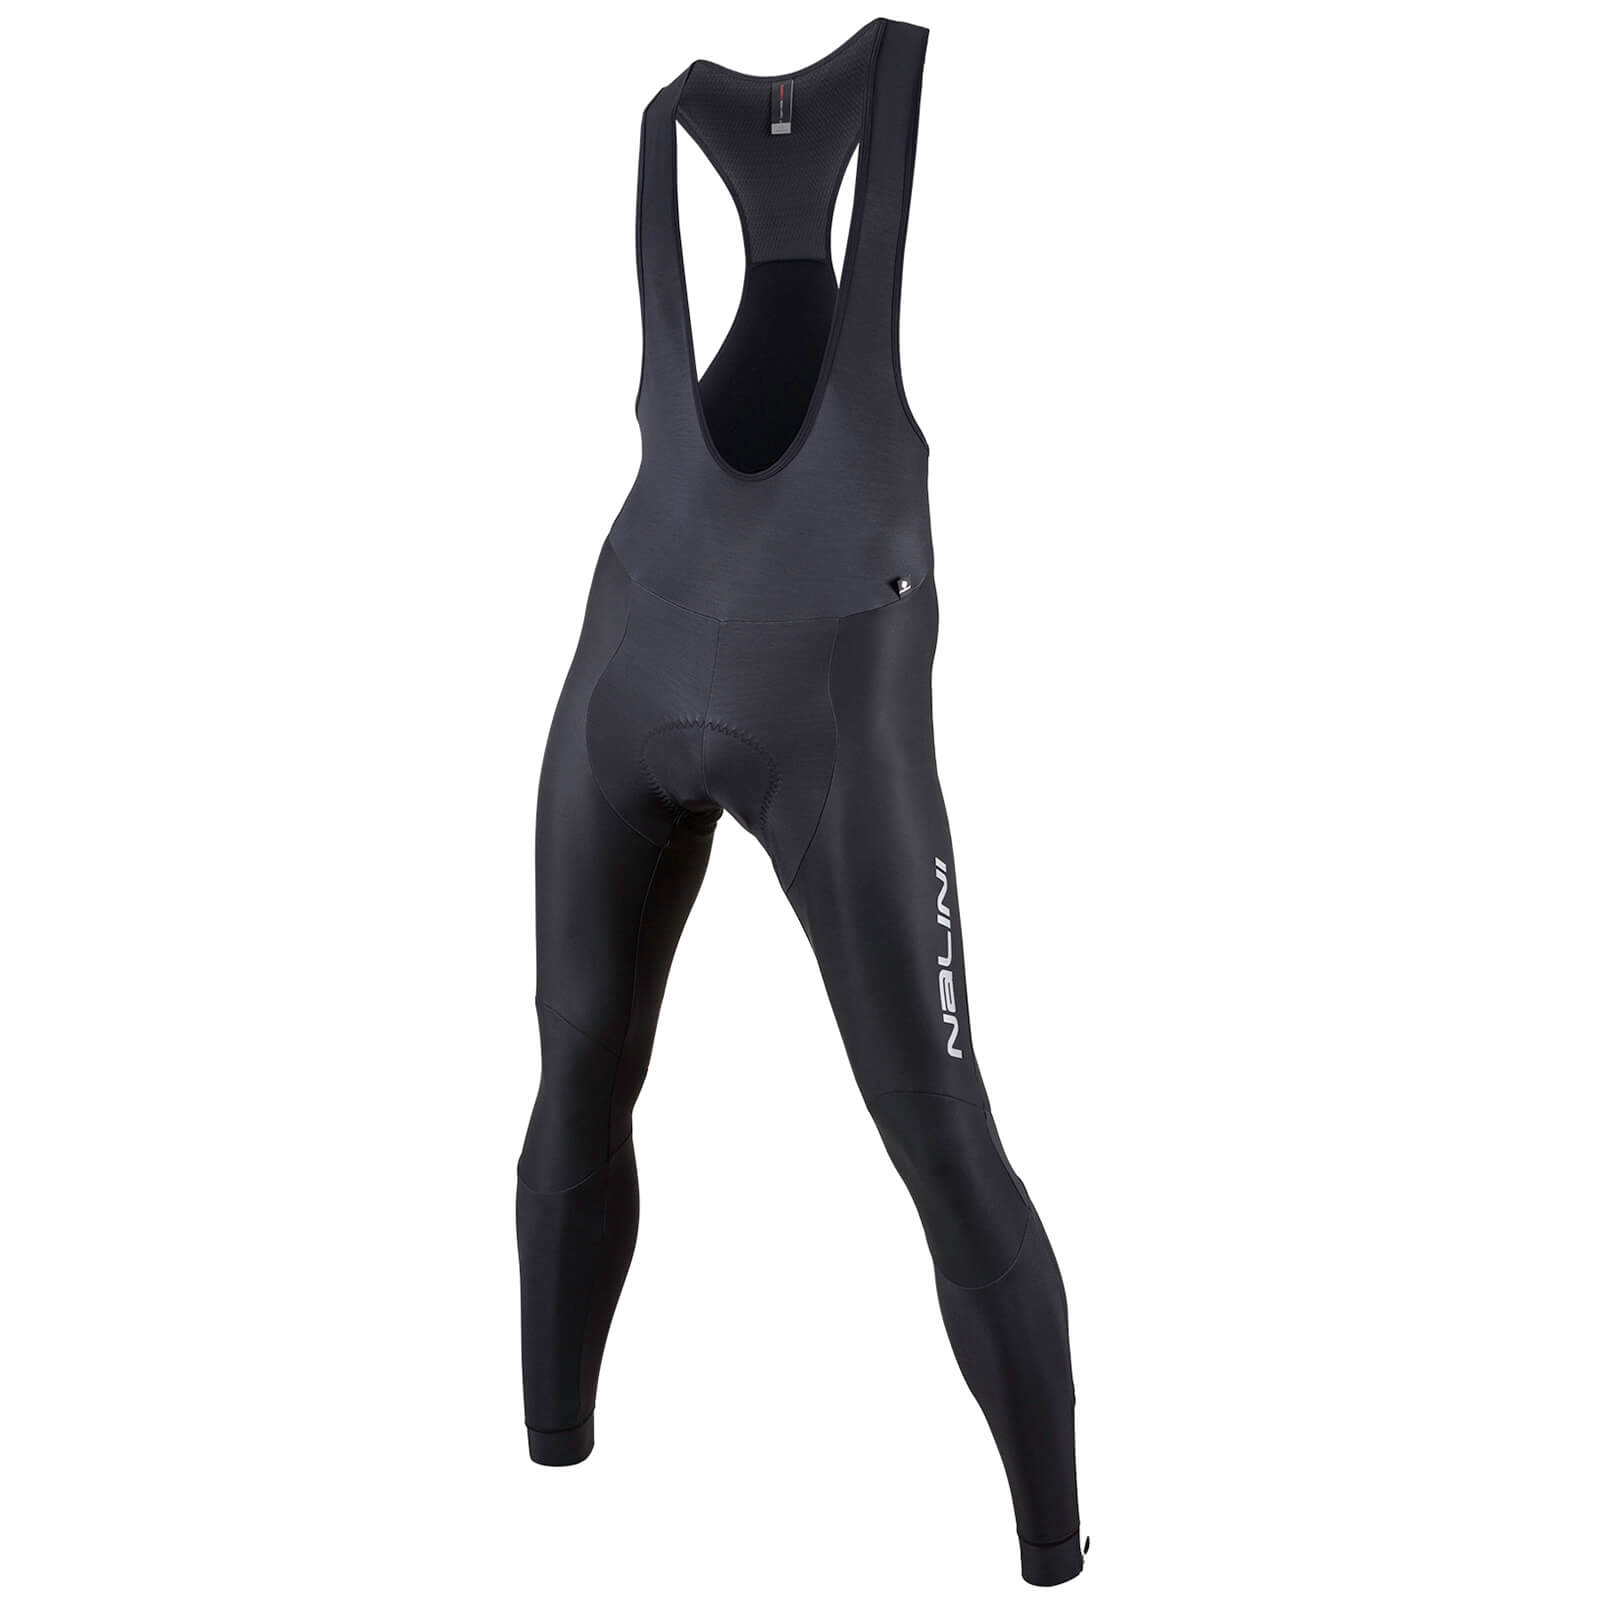 Nalini Schedar Warm Thermo Bib Tights - Black